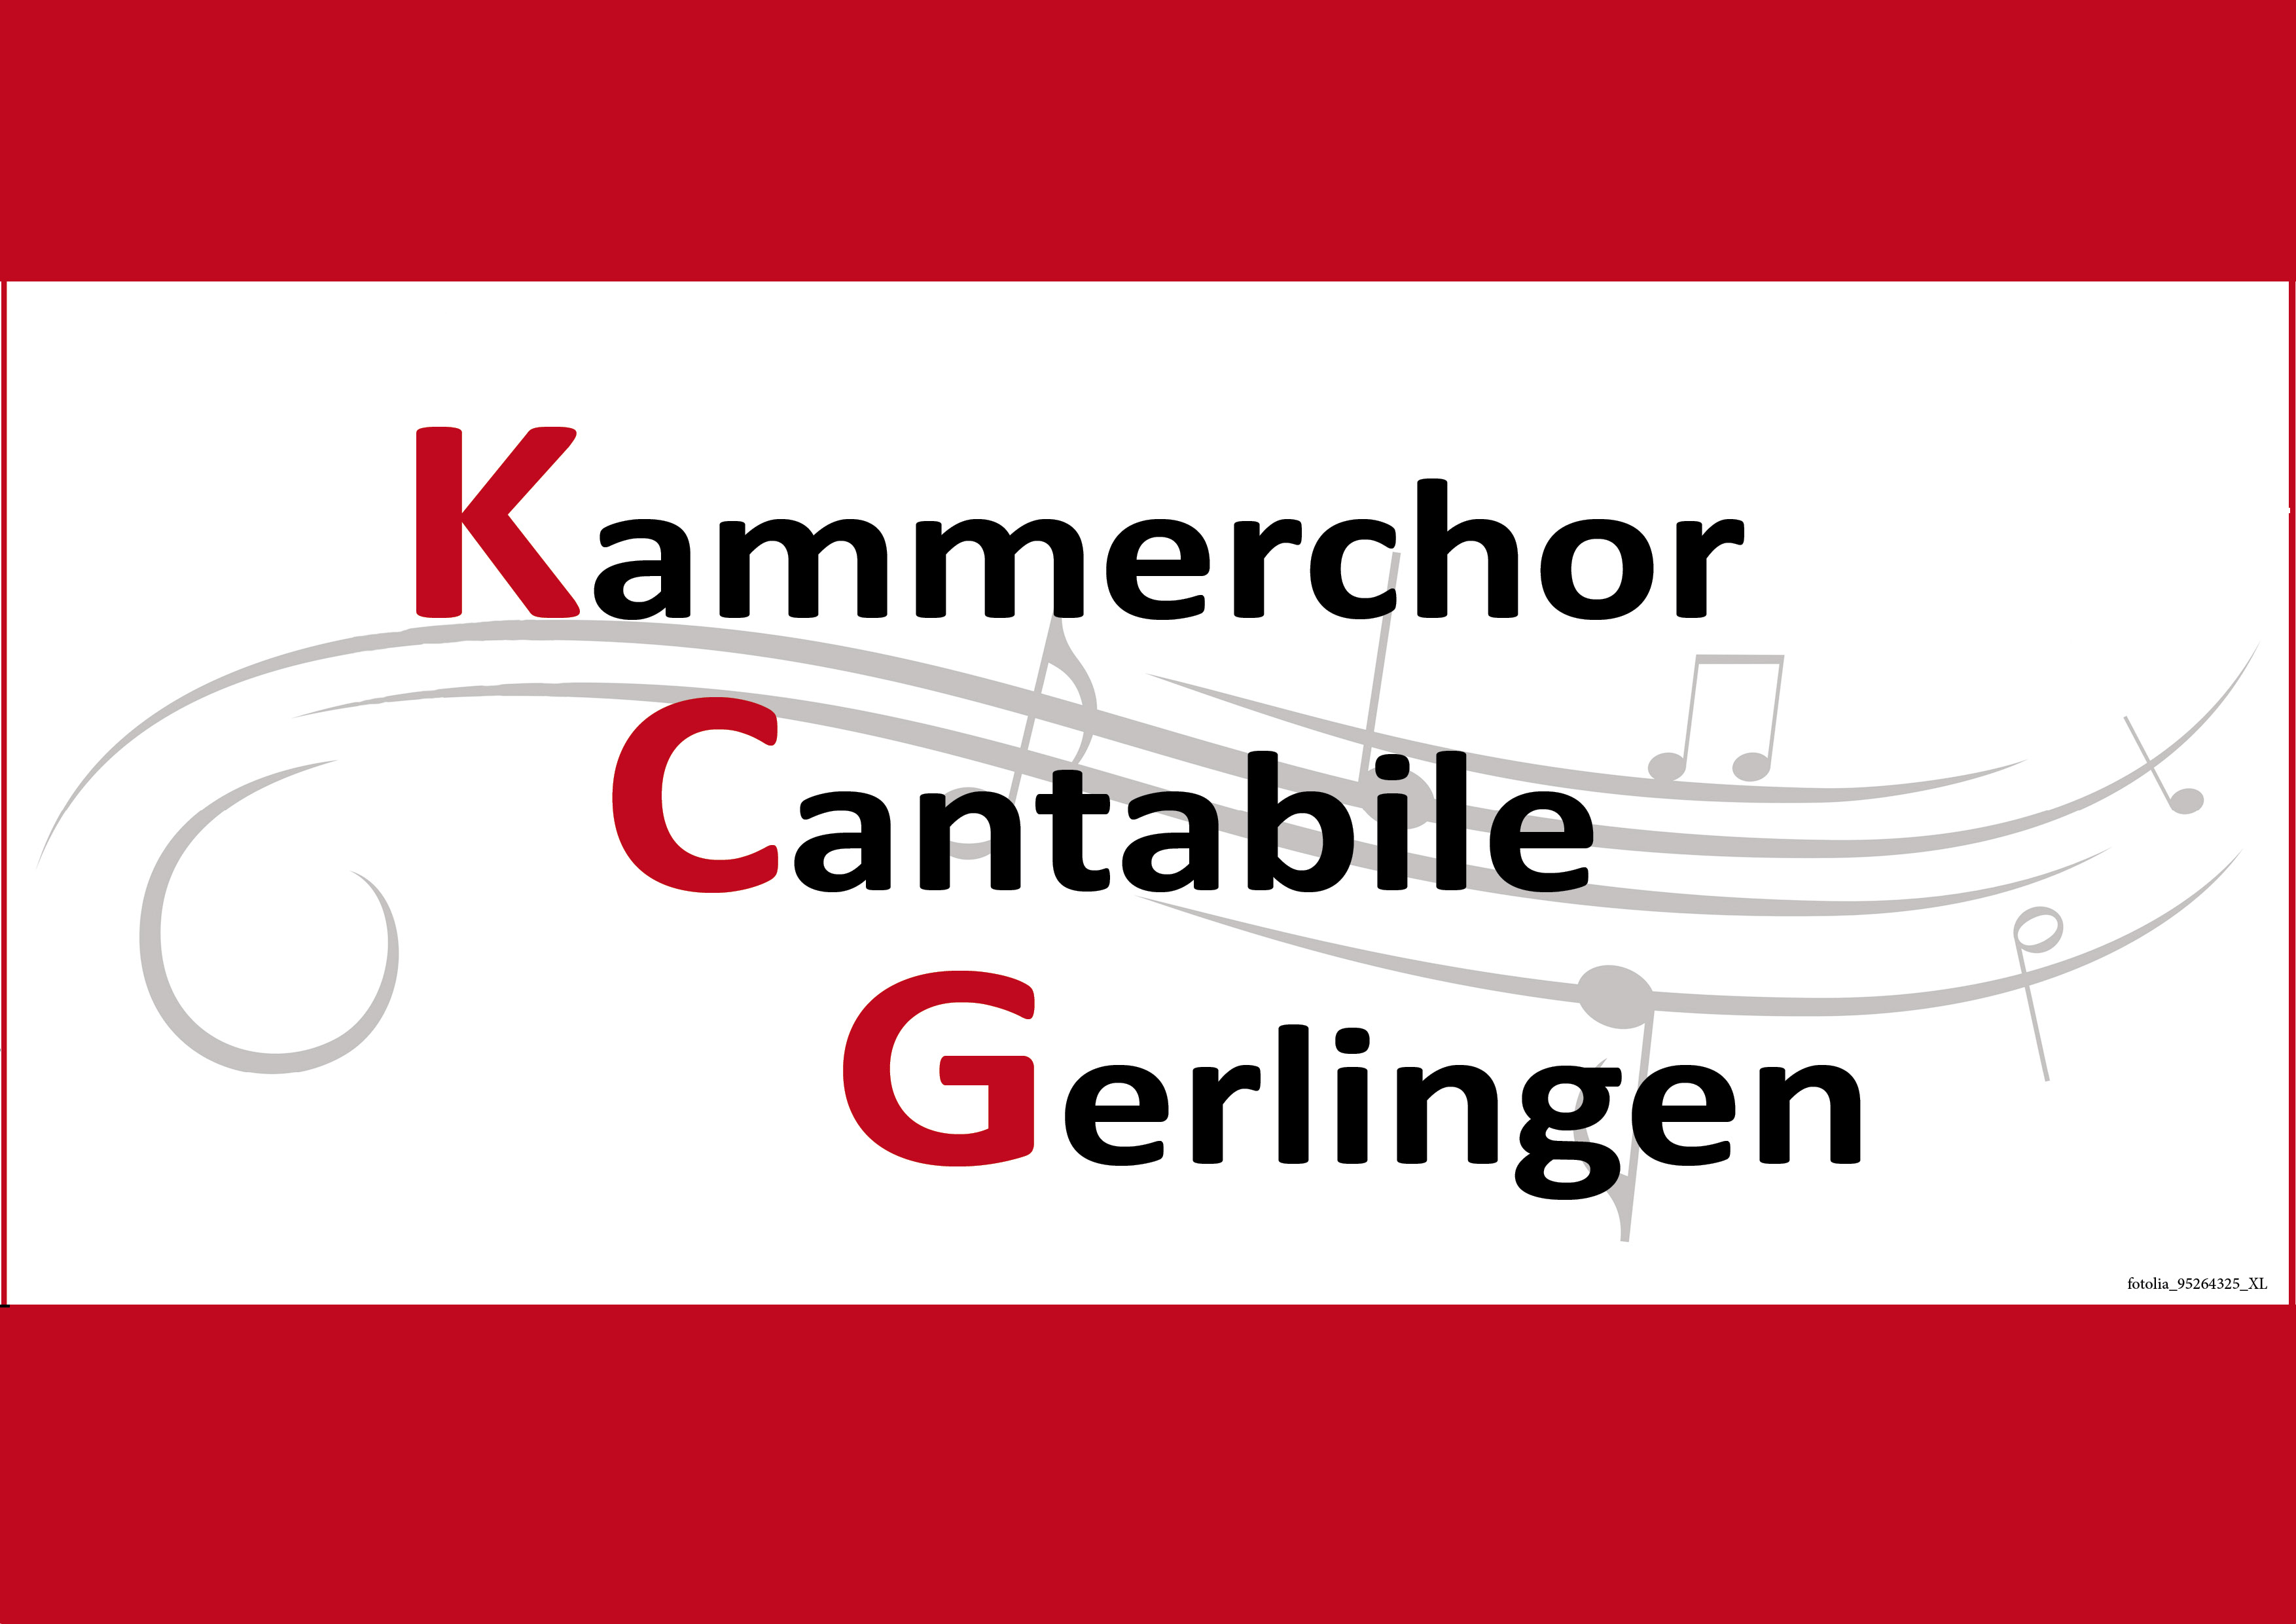 Kammerchor Cantabile Gerlingen